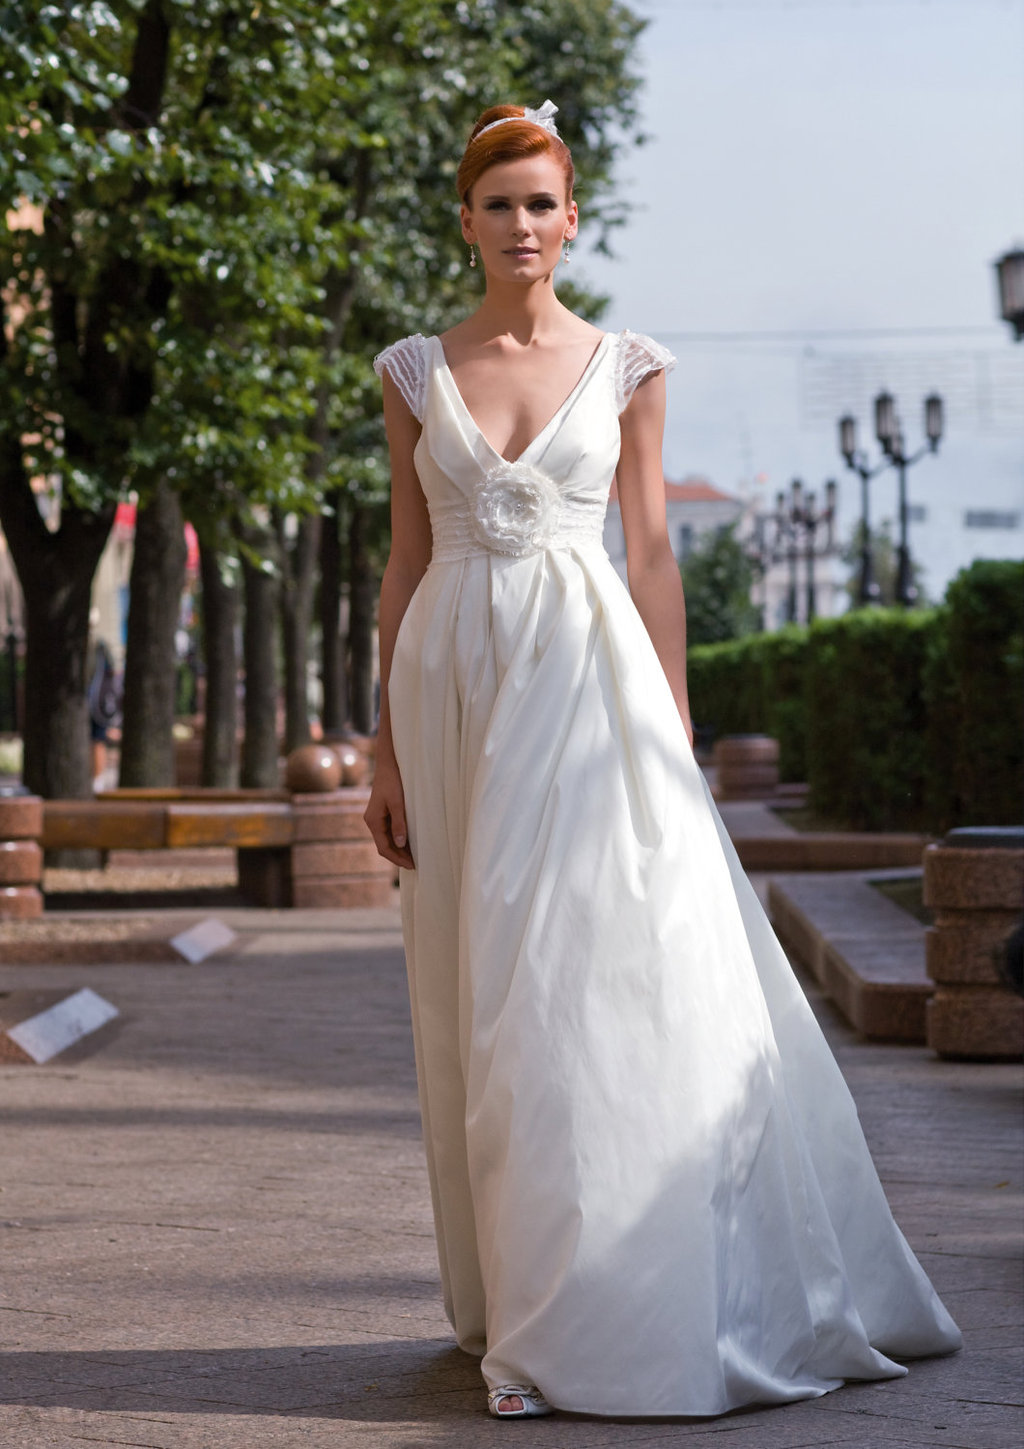 Edelweis-wedding-dress-1.full